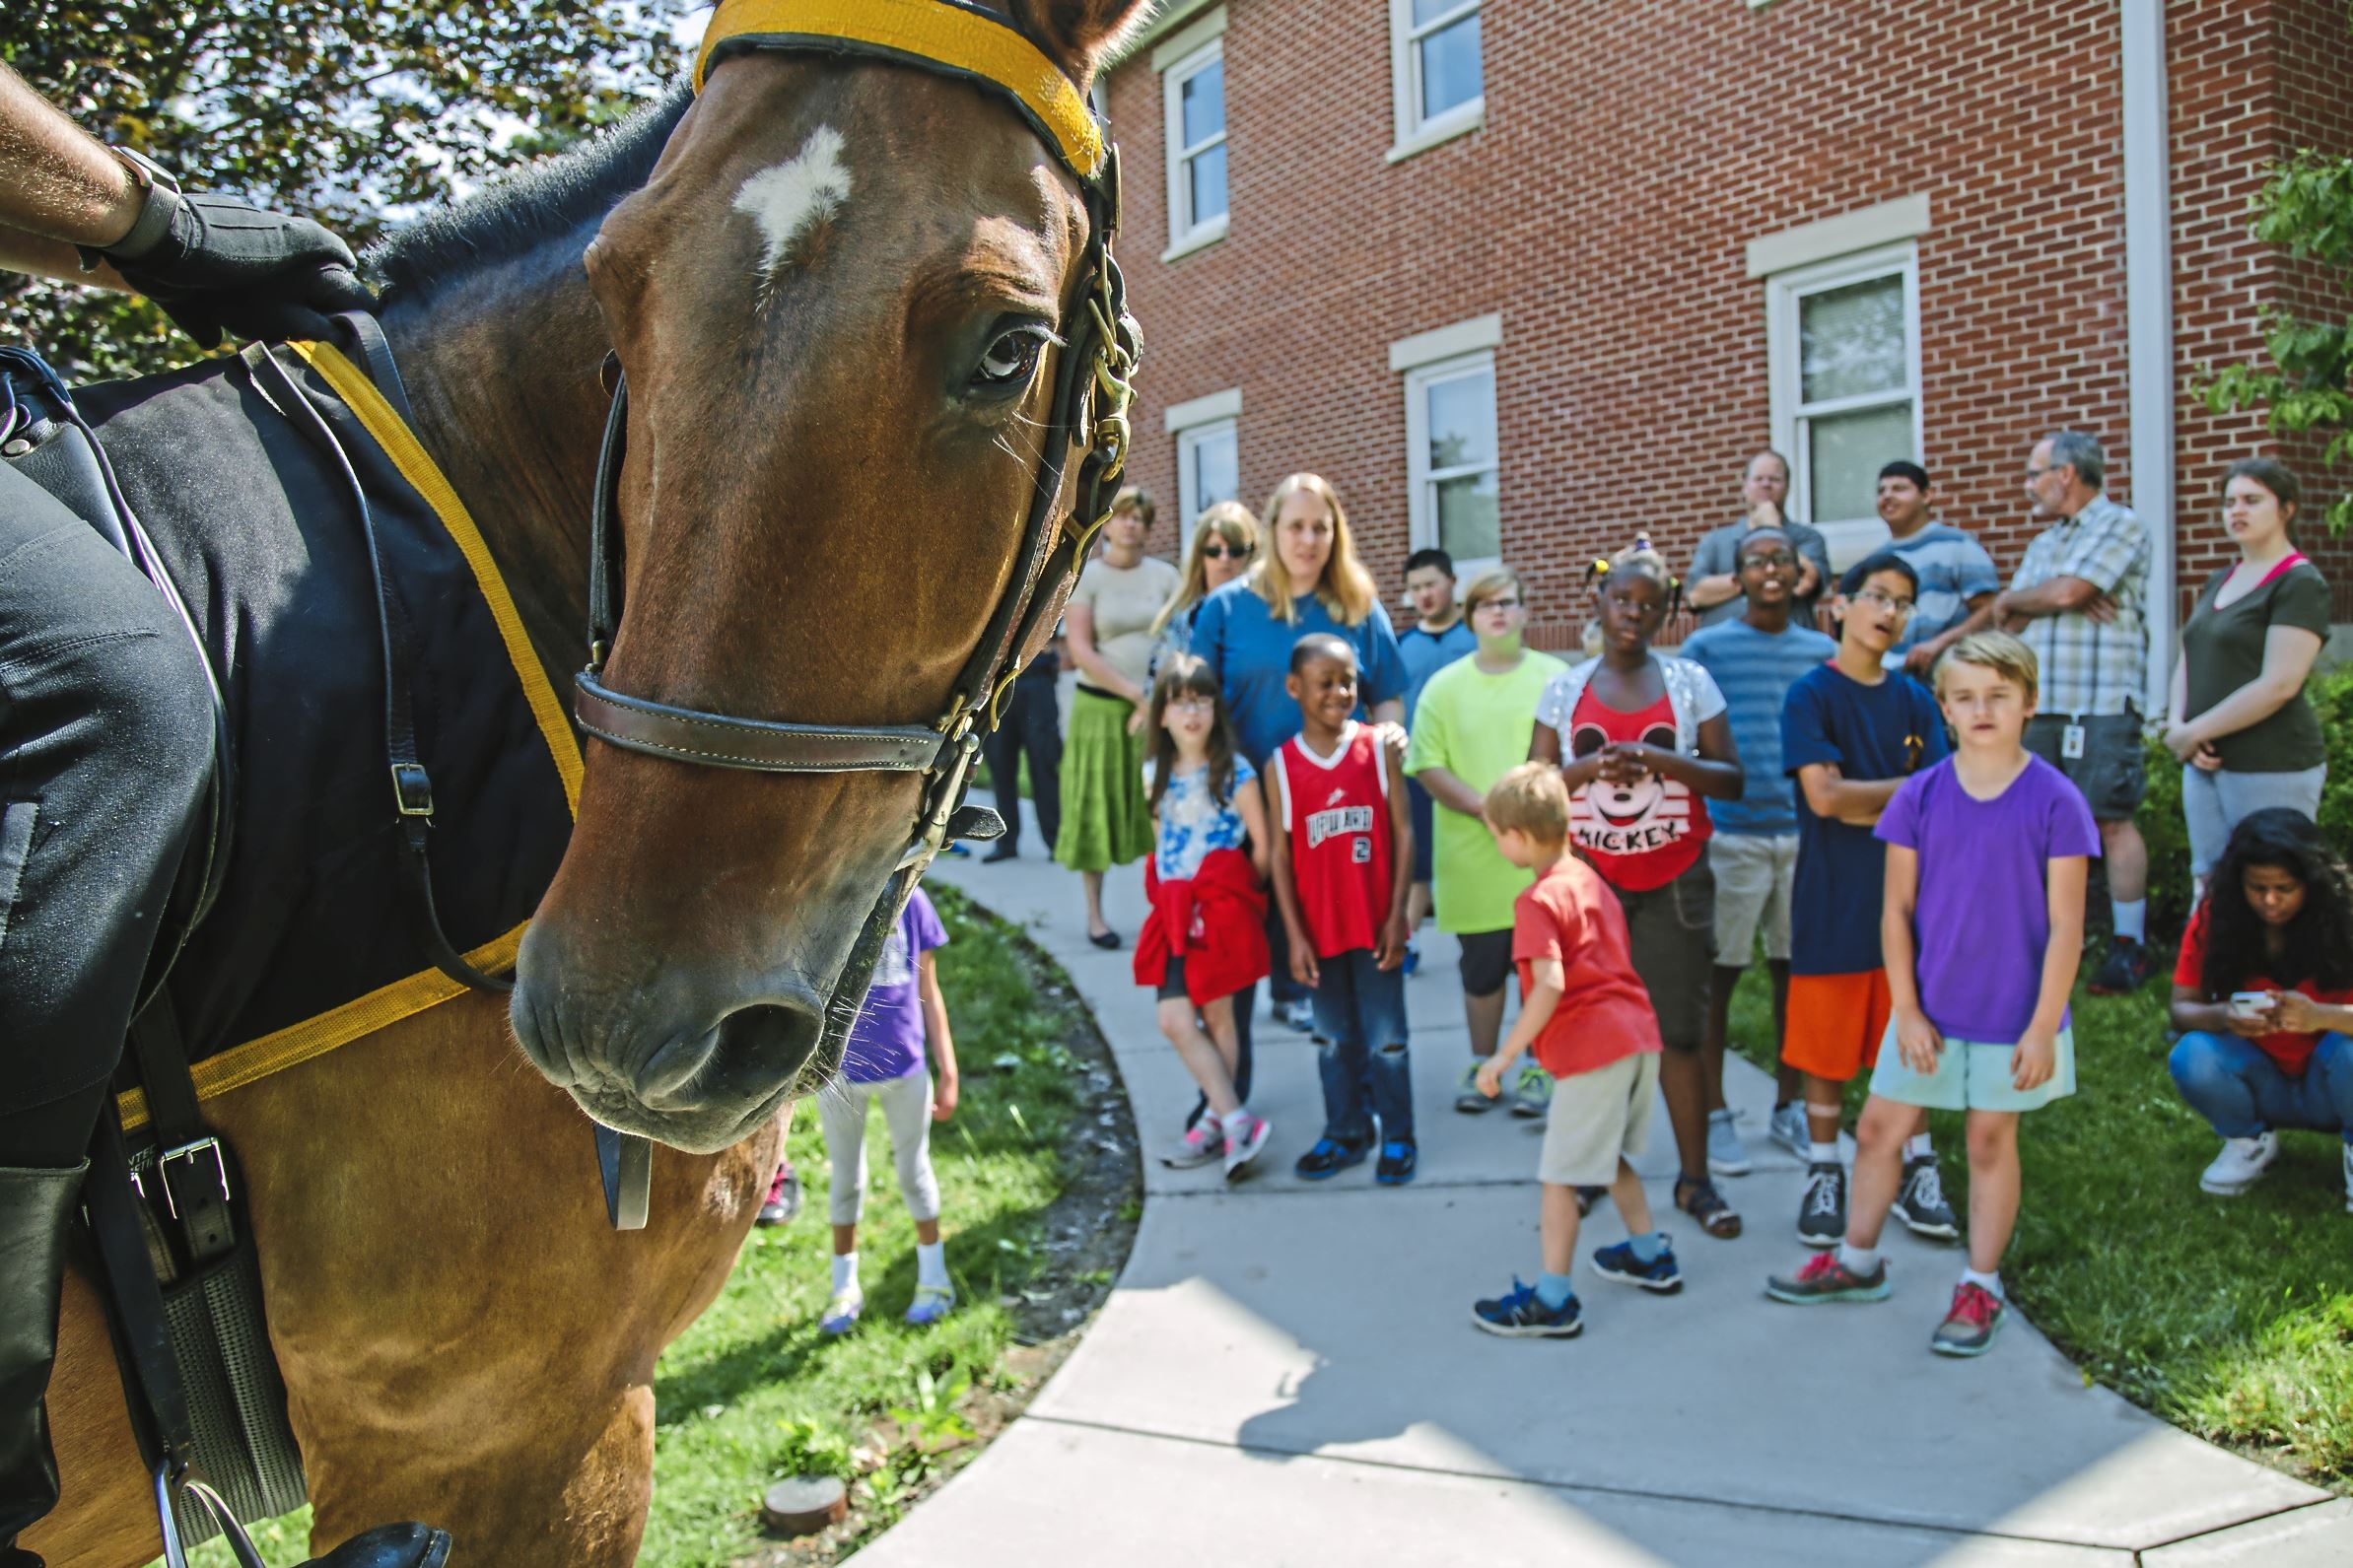 20170711arHorseAcademy03-2 Milo, ridden by Officer Christopher Swanson of the Allegheny County Police Mounted Unit, visits the Western Pennsylvania School for the Deaf in Edgewood during this week's Junior Police Academy activities.